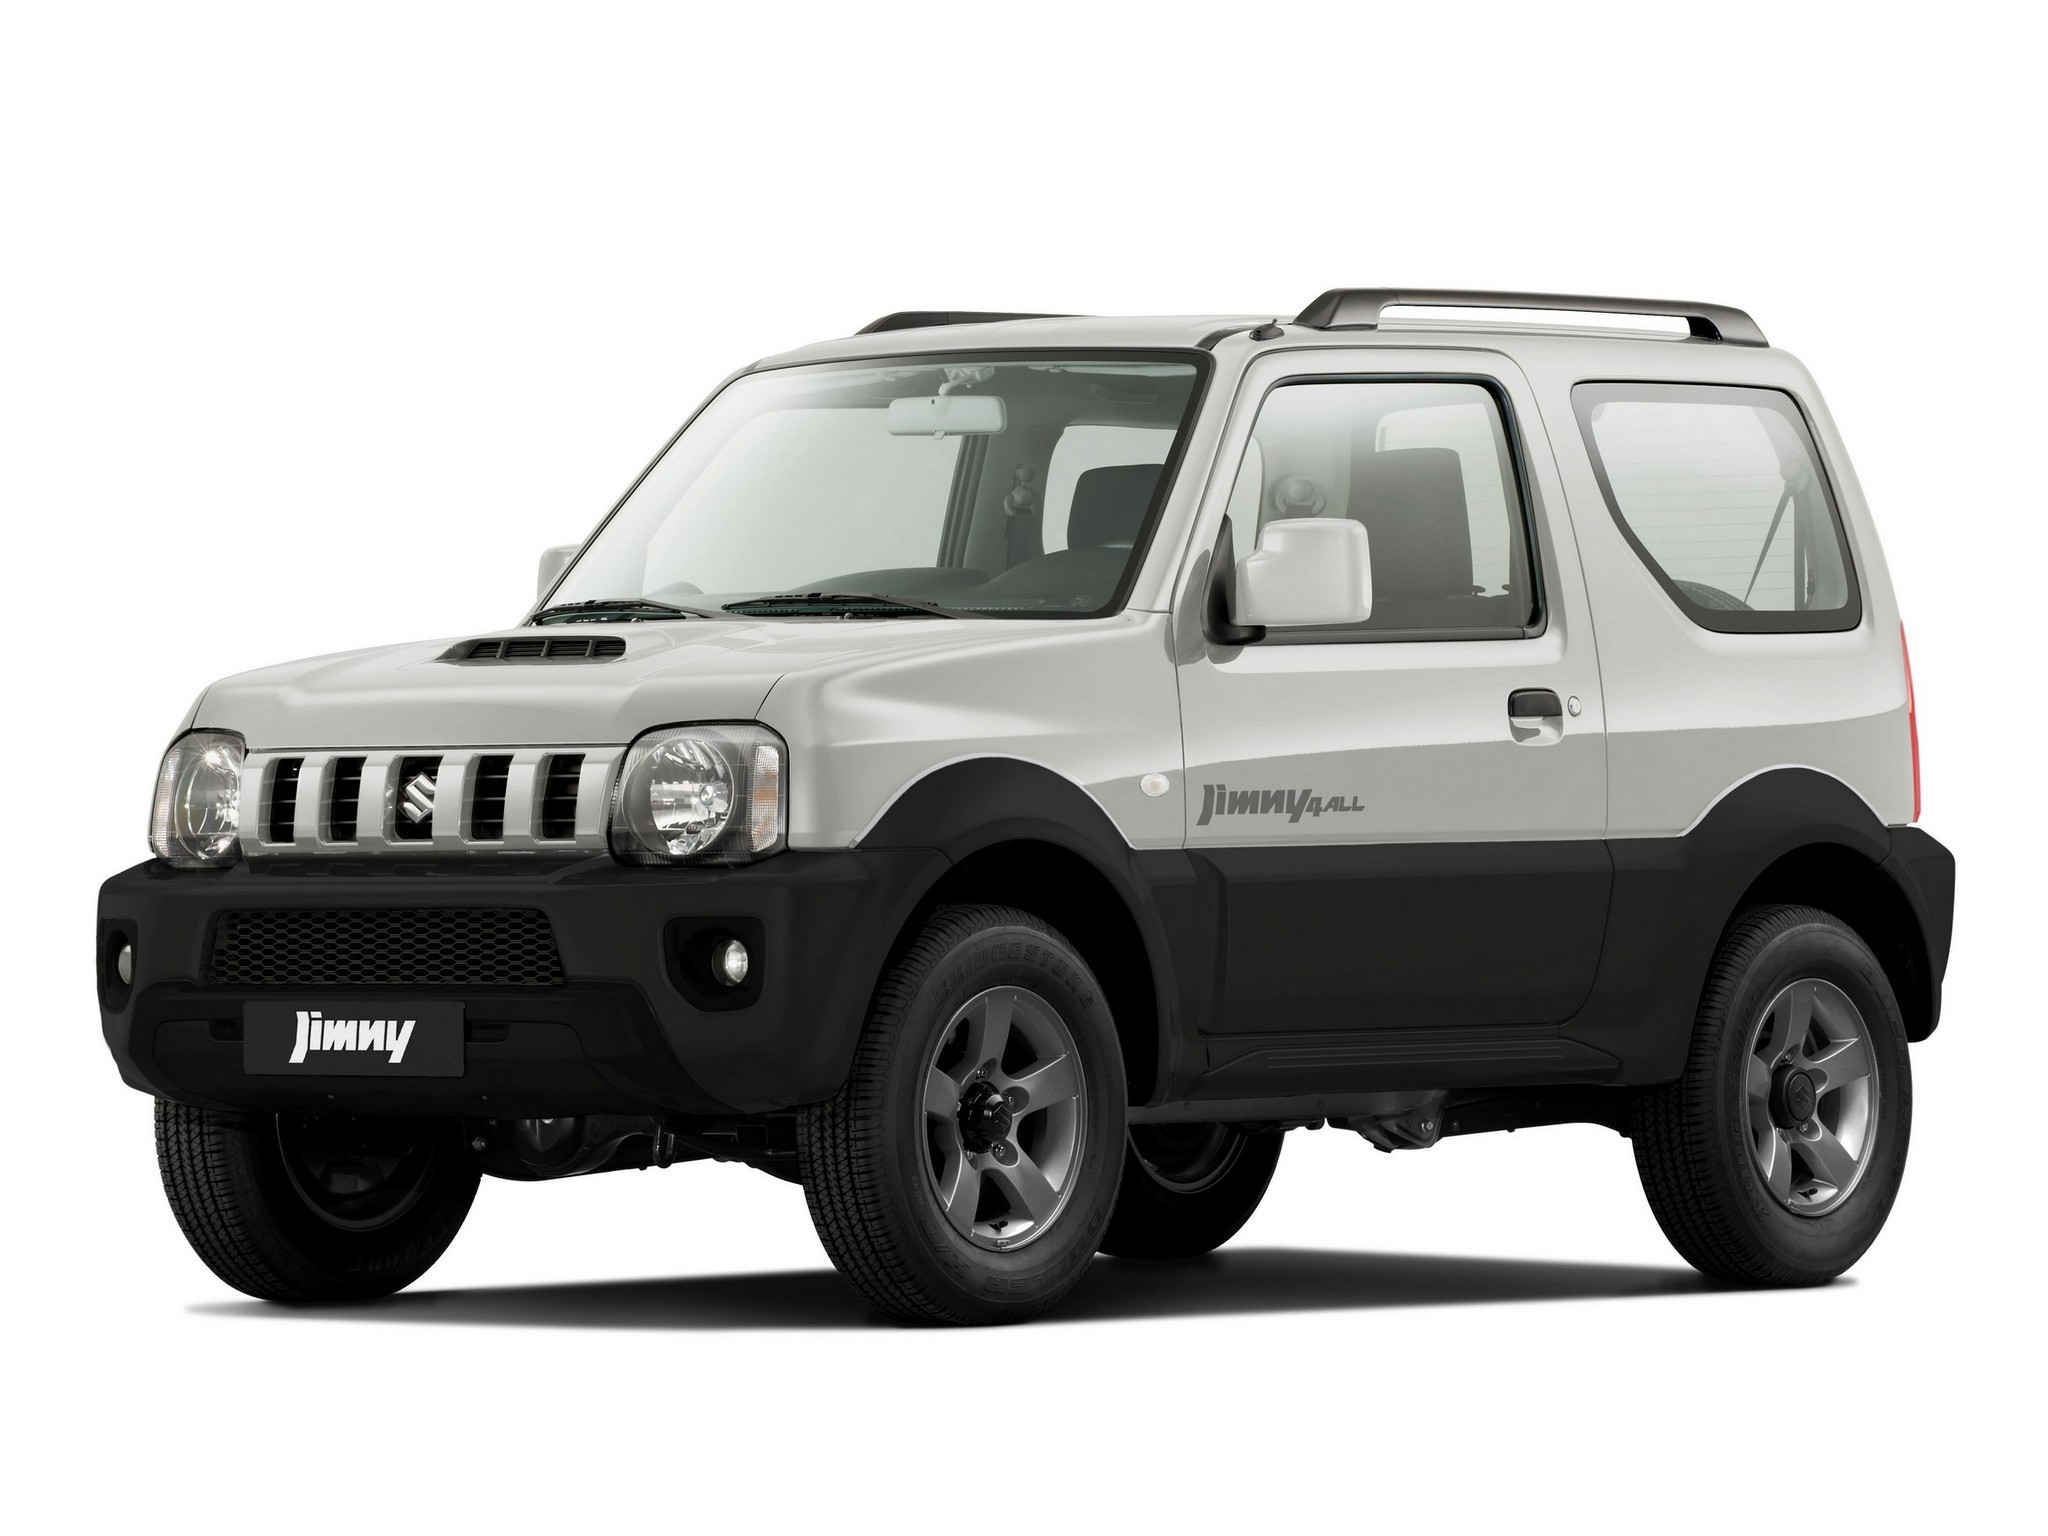 suzuki jimny specs 2012 2013 2014 2015 2016 2017 autoevolution. Black Bedroom Furniture Sets. Home Design Ideas